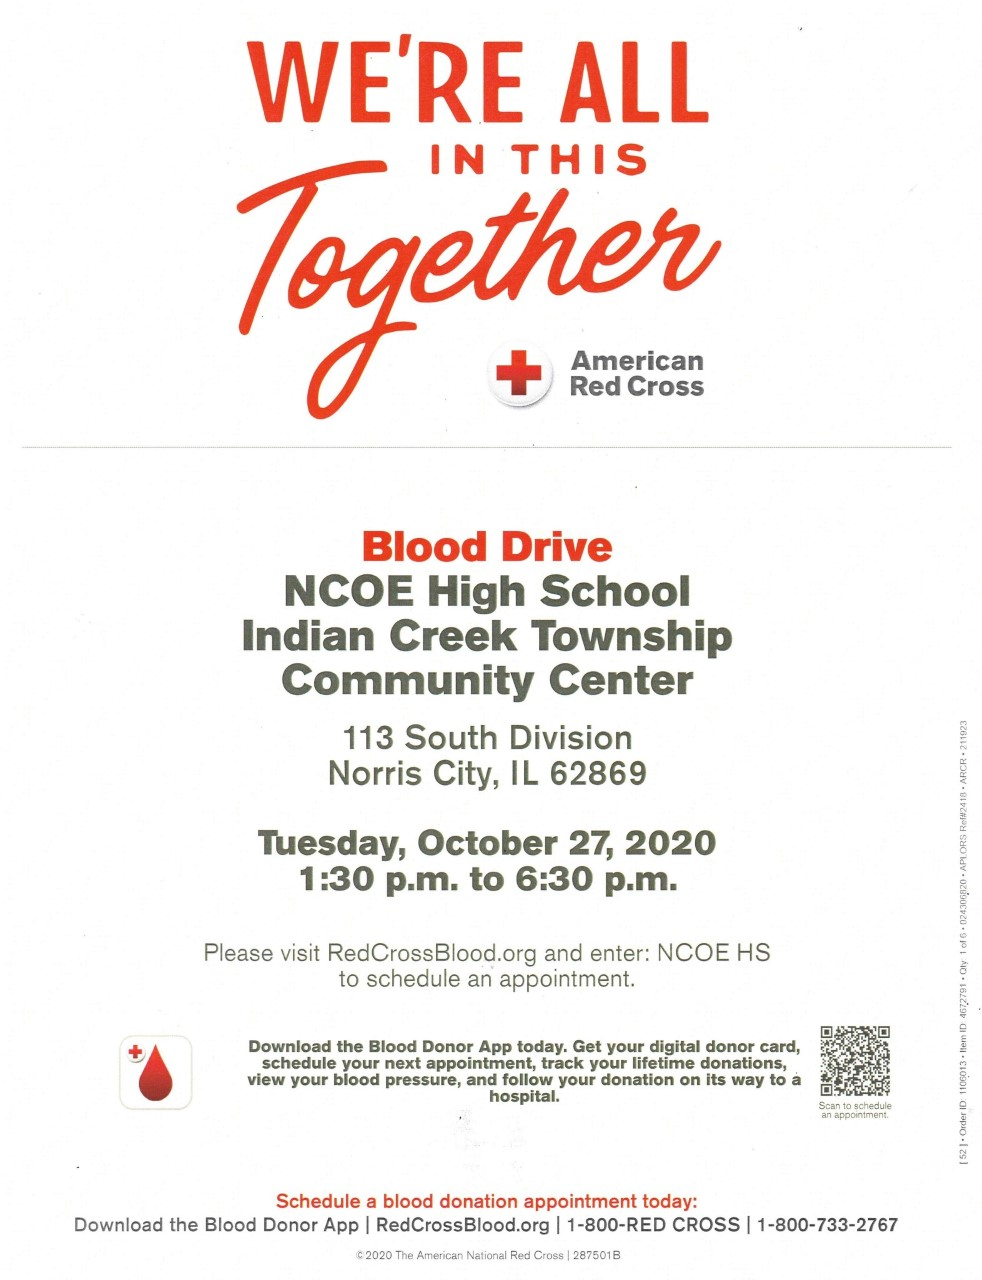 NCOE High School to Host American Red Cross Blood Drive Tuesday, October 27th